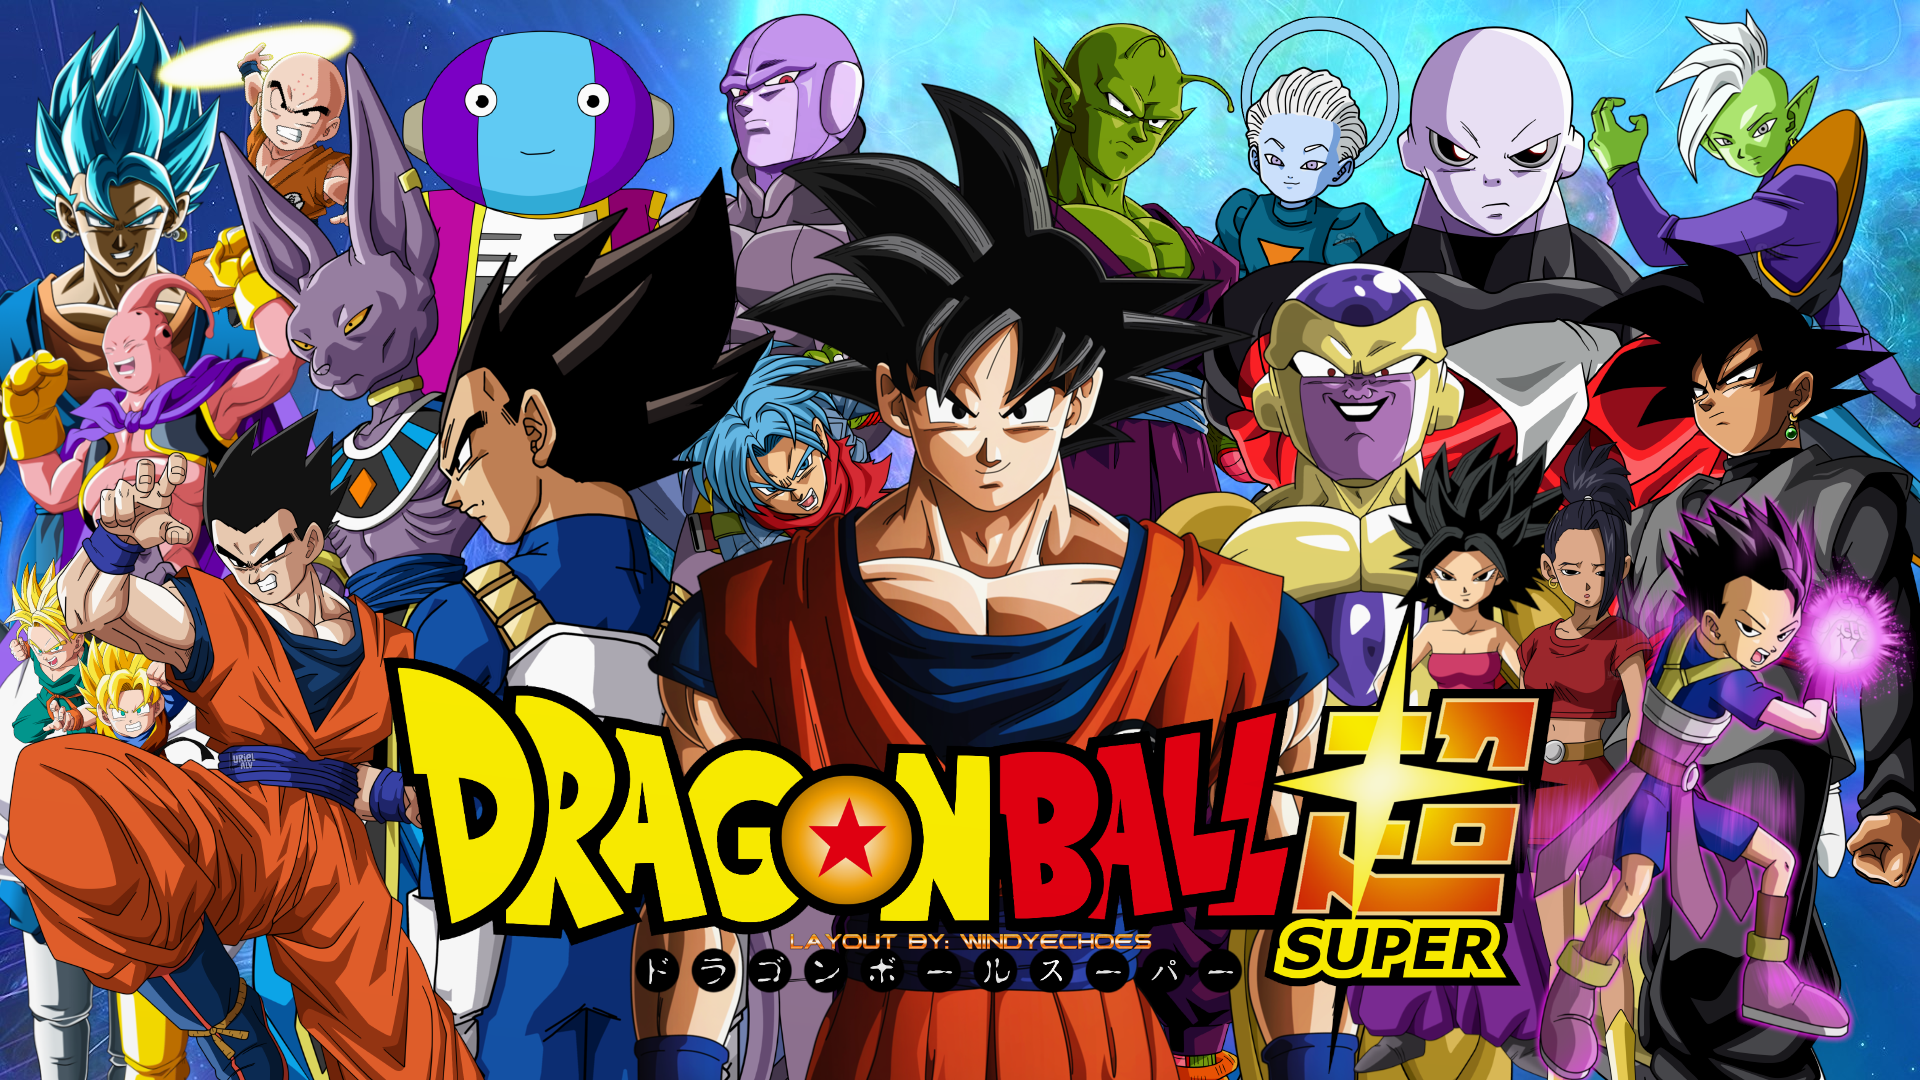 Dragon Ball Super Wallpaper Phone On Wallpaper 1080p Hd Dragon